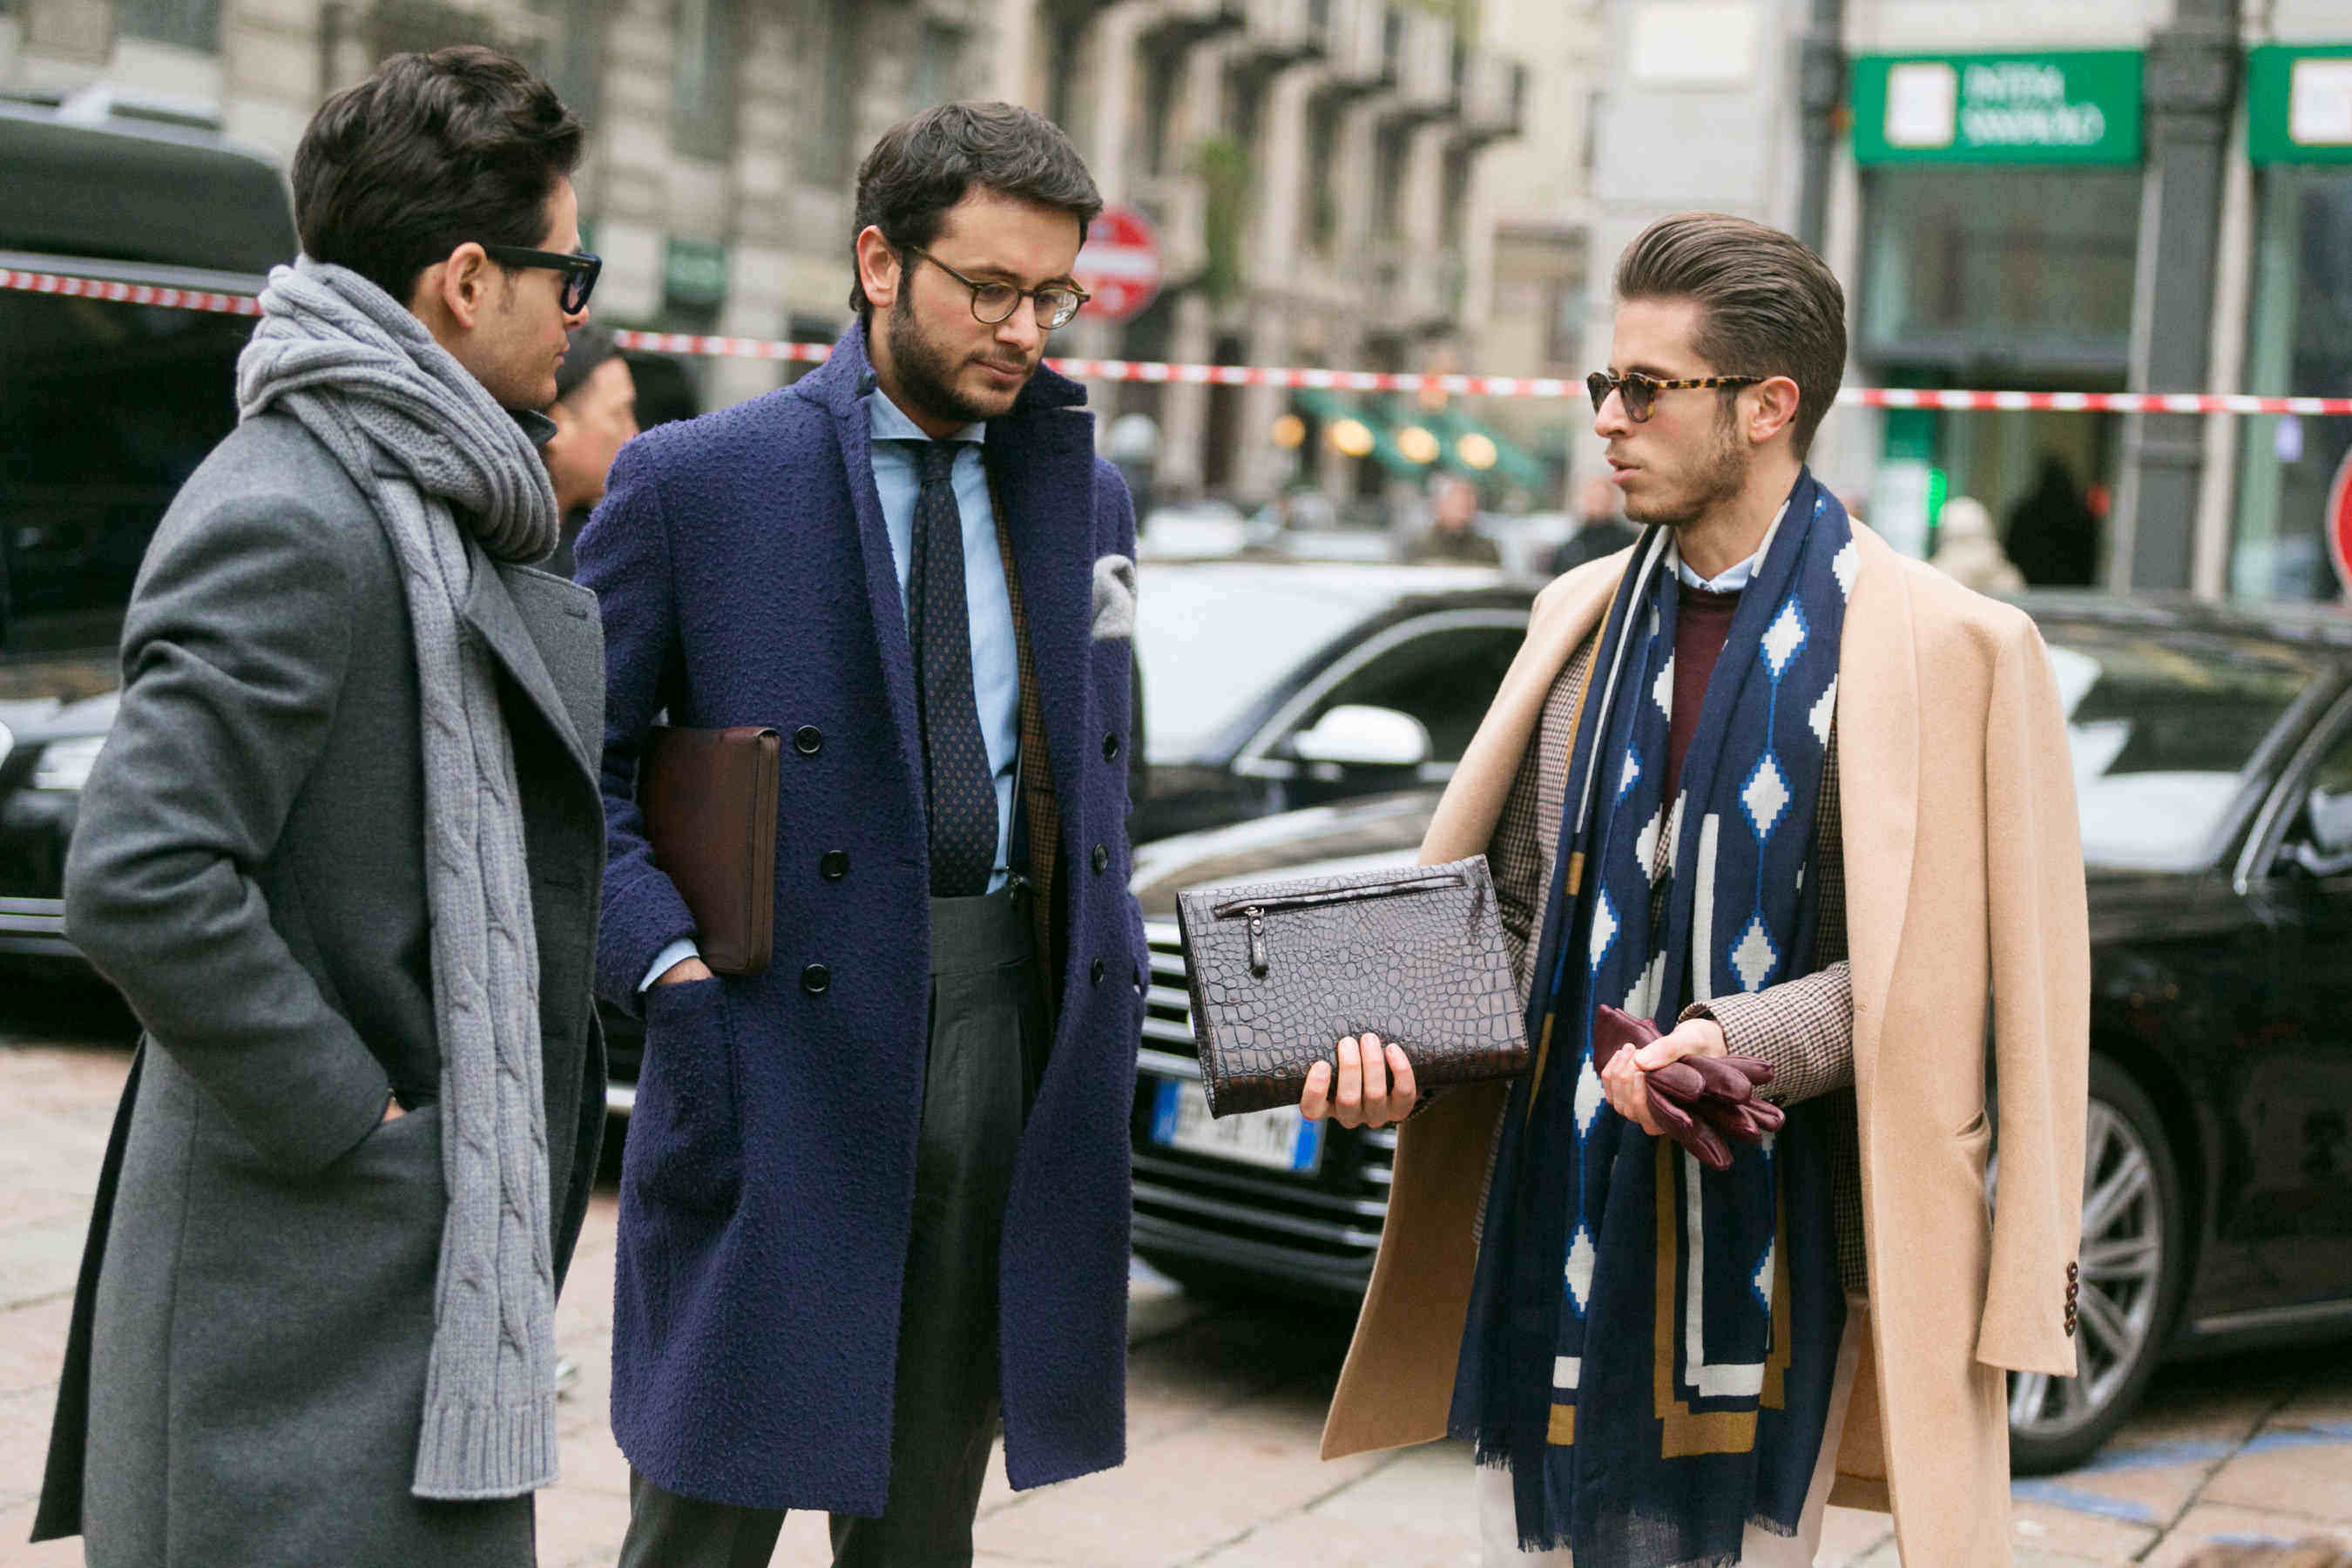 rsz_scarf-men-street-style-by-melodie-jeng3-mfw-streetstyle3-jeng-7584